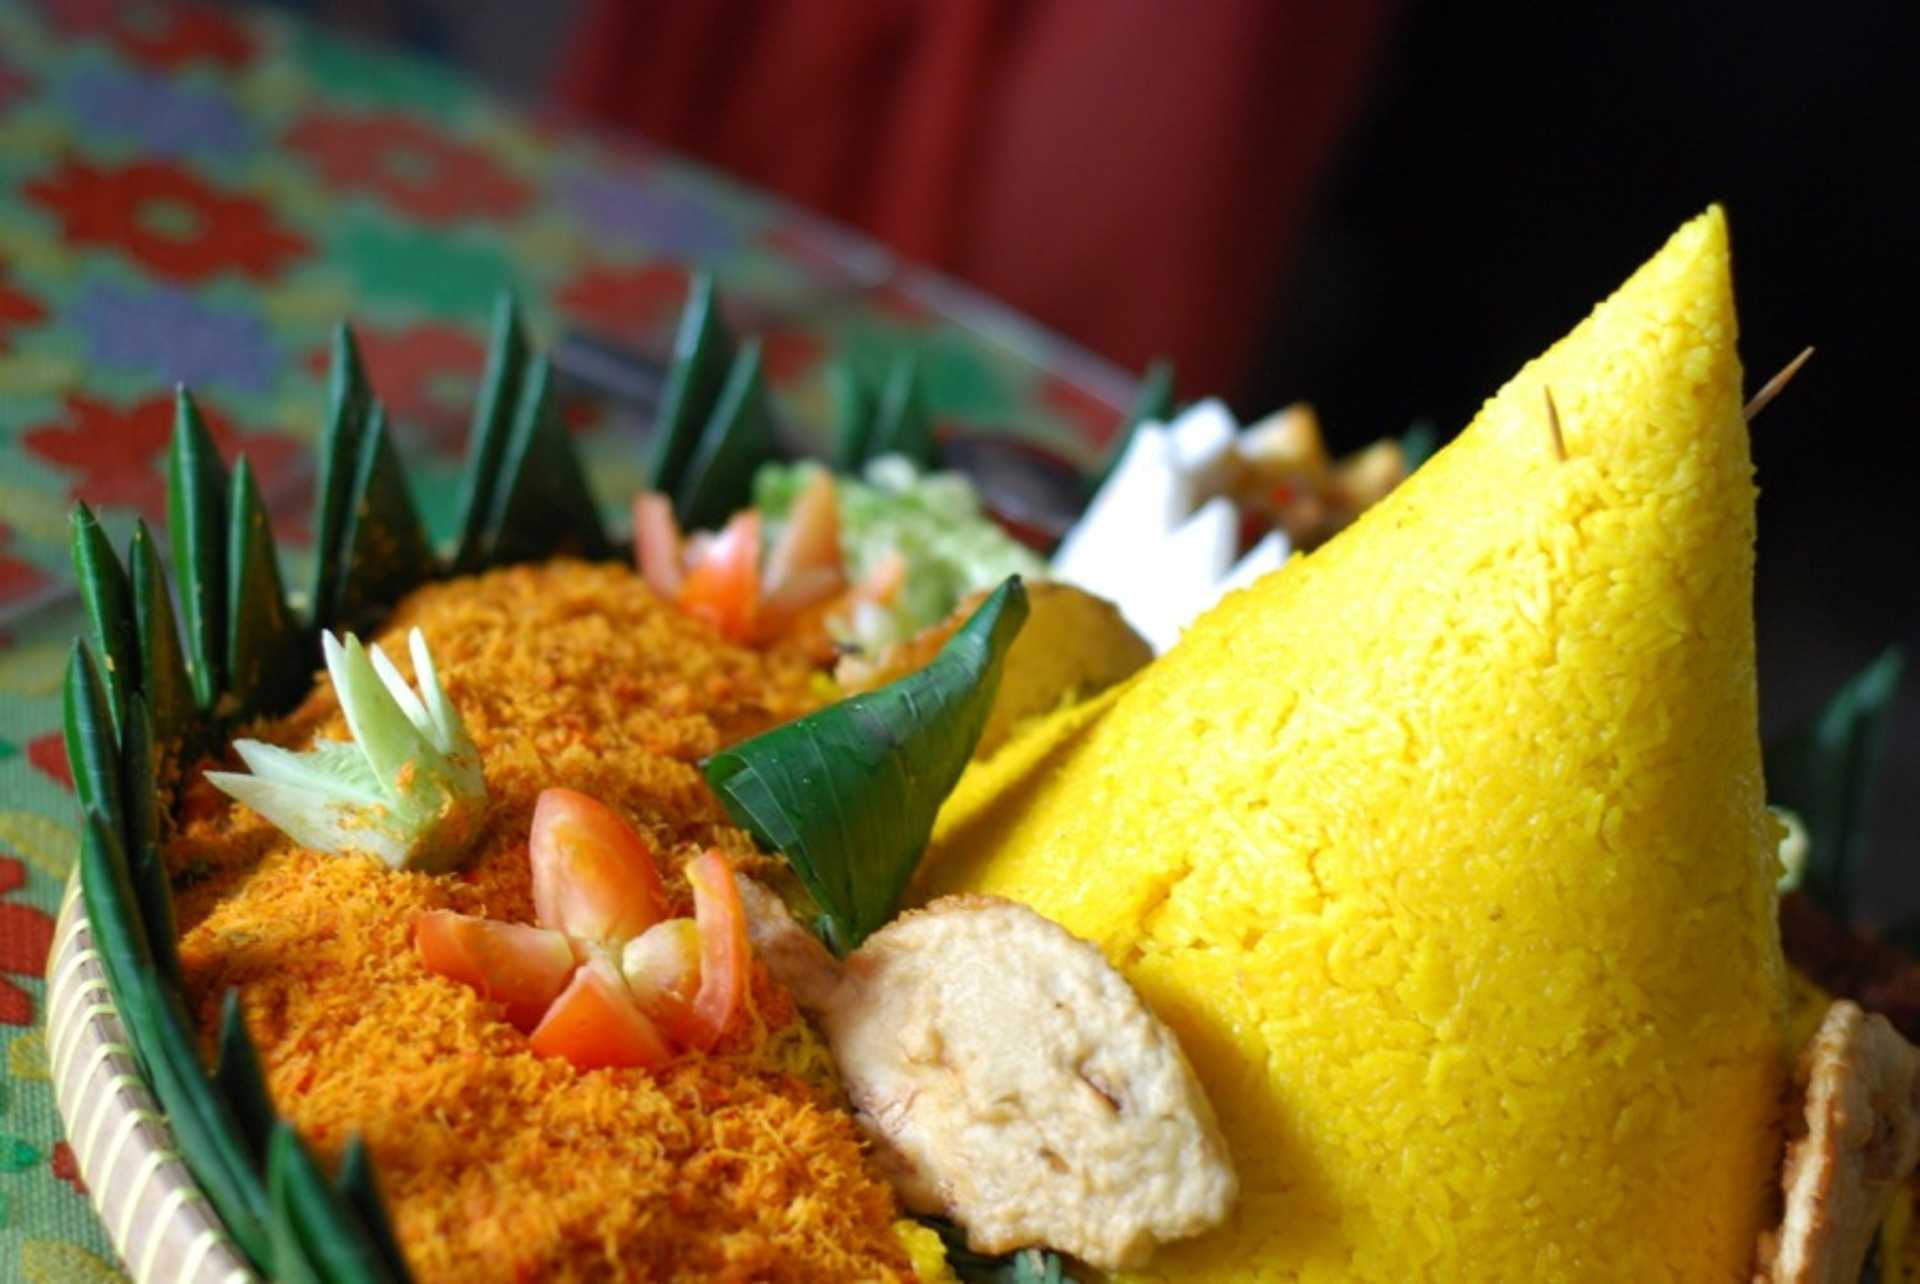 How about nasi kunyit Indonesia for Iftar?